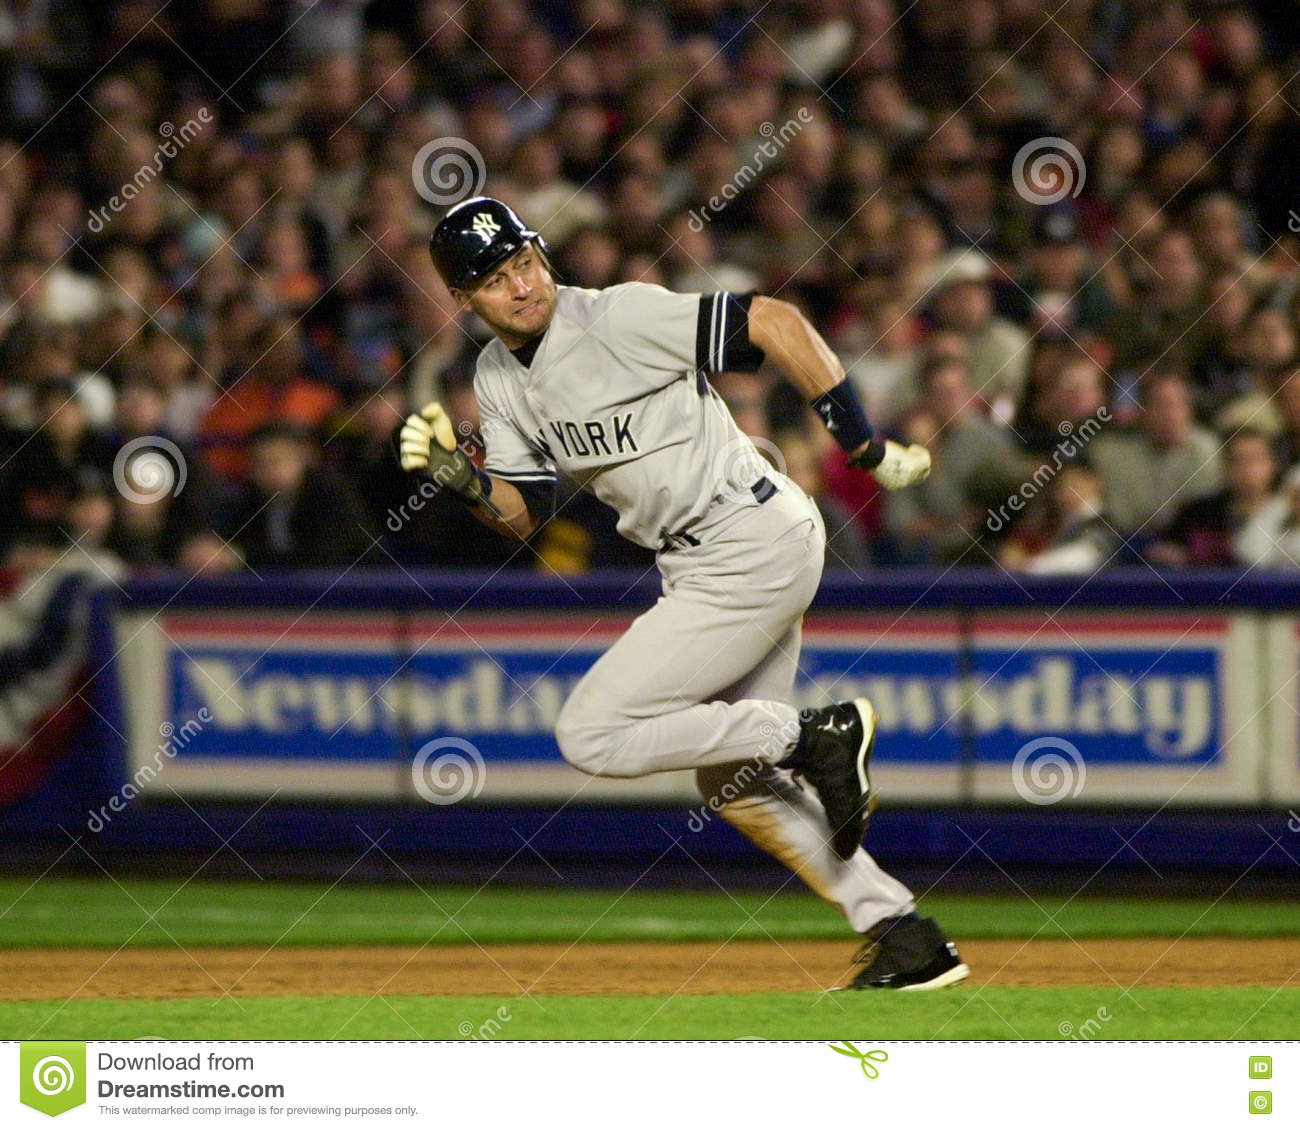 a55cf019d New York Yankees SS Derek Jeter in 2000 World Series action. (Image taken  from a color slide.)